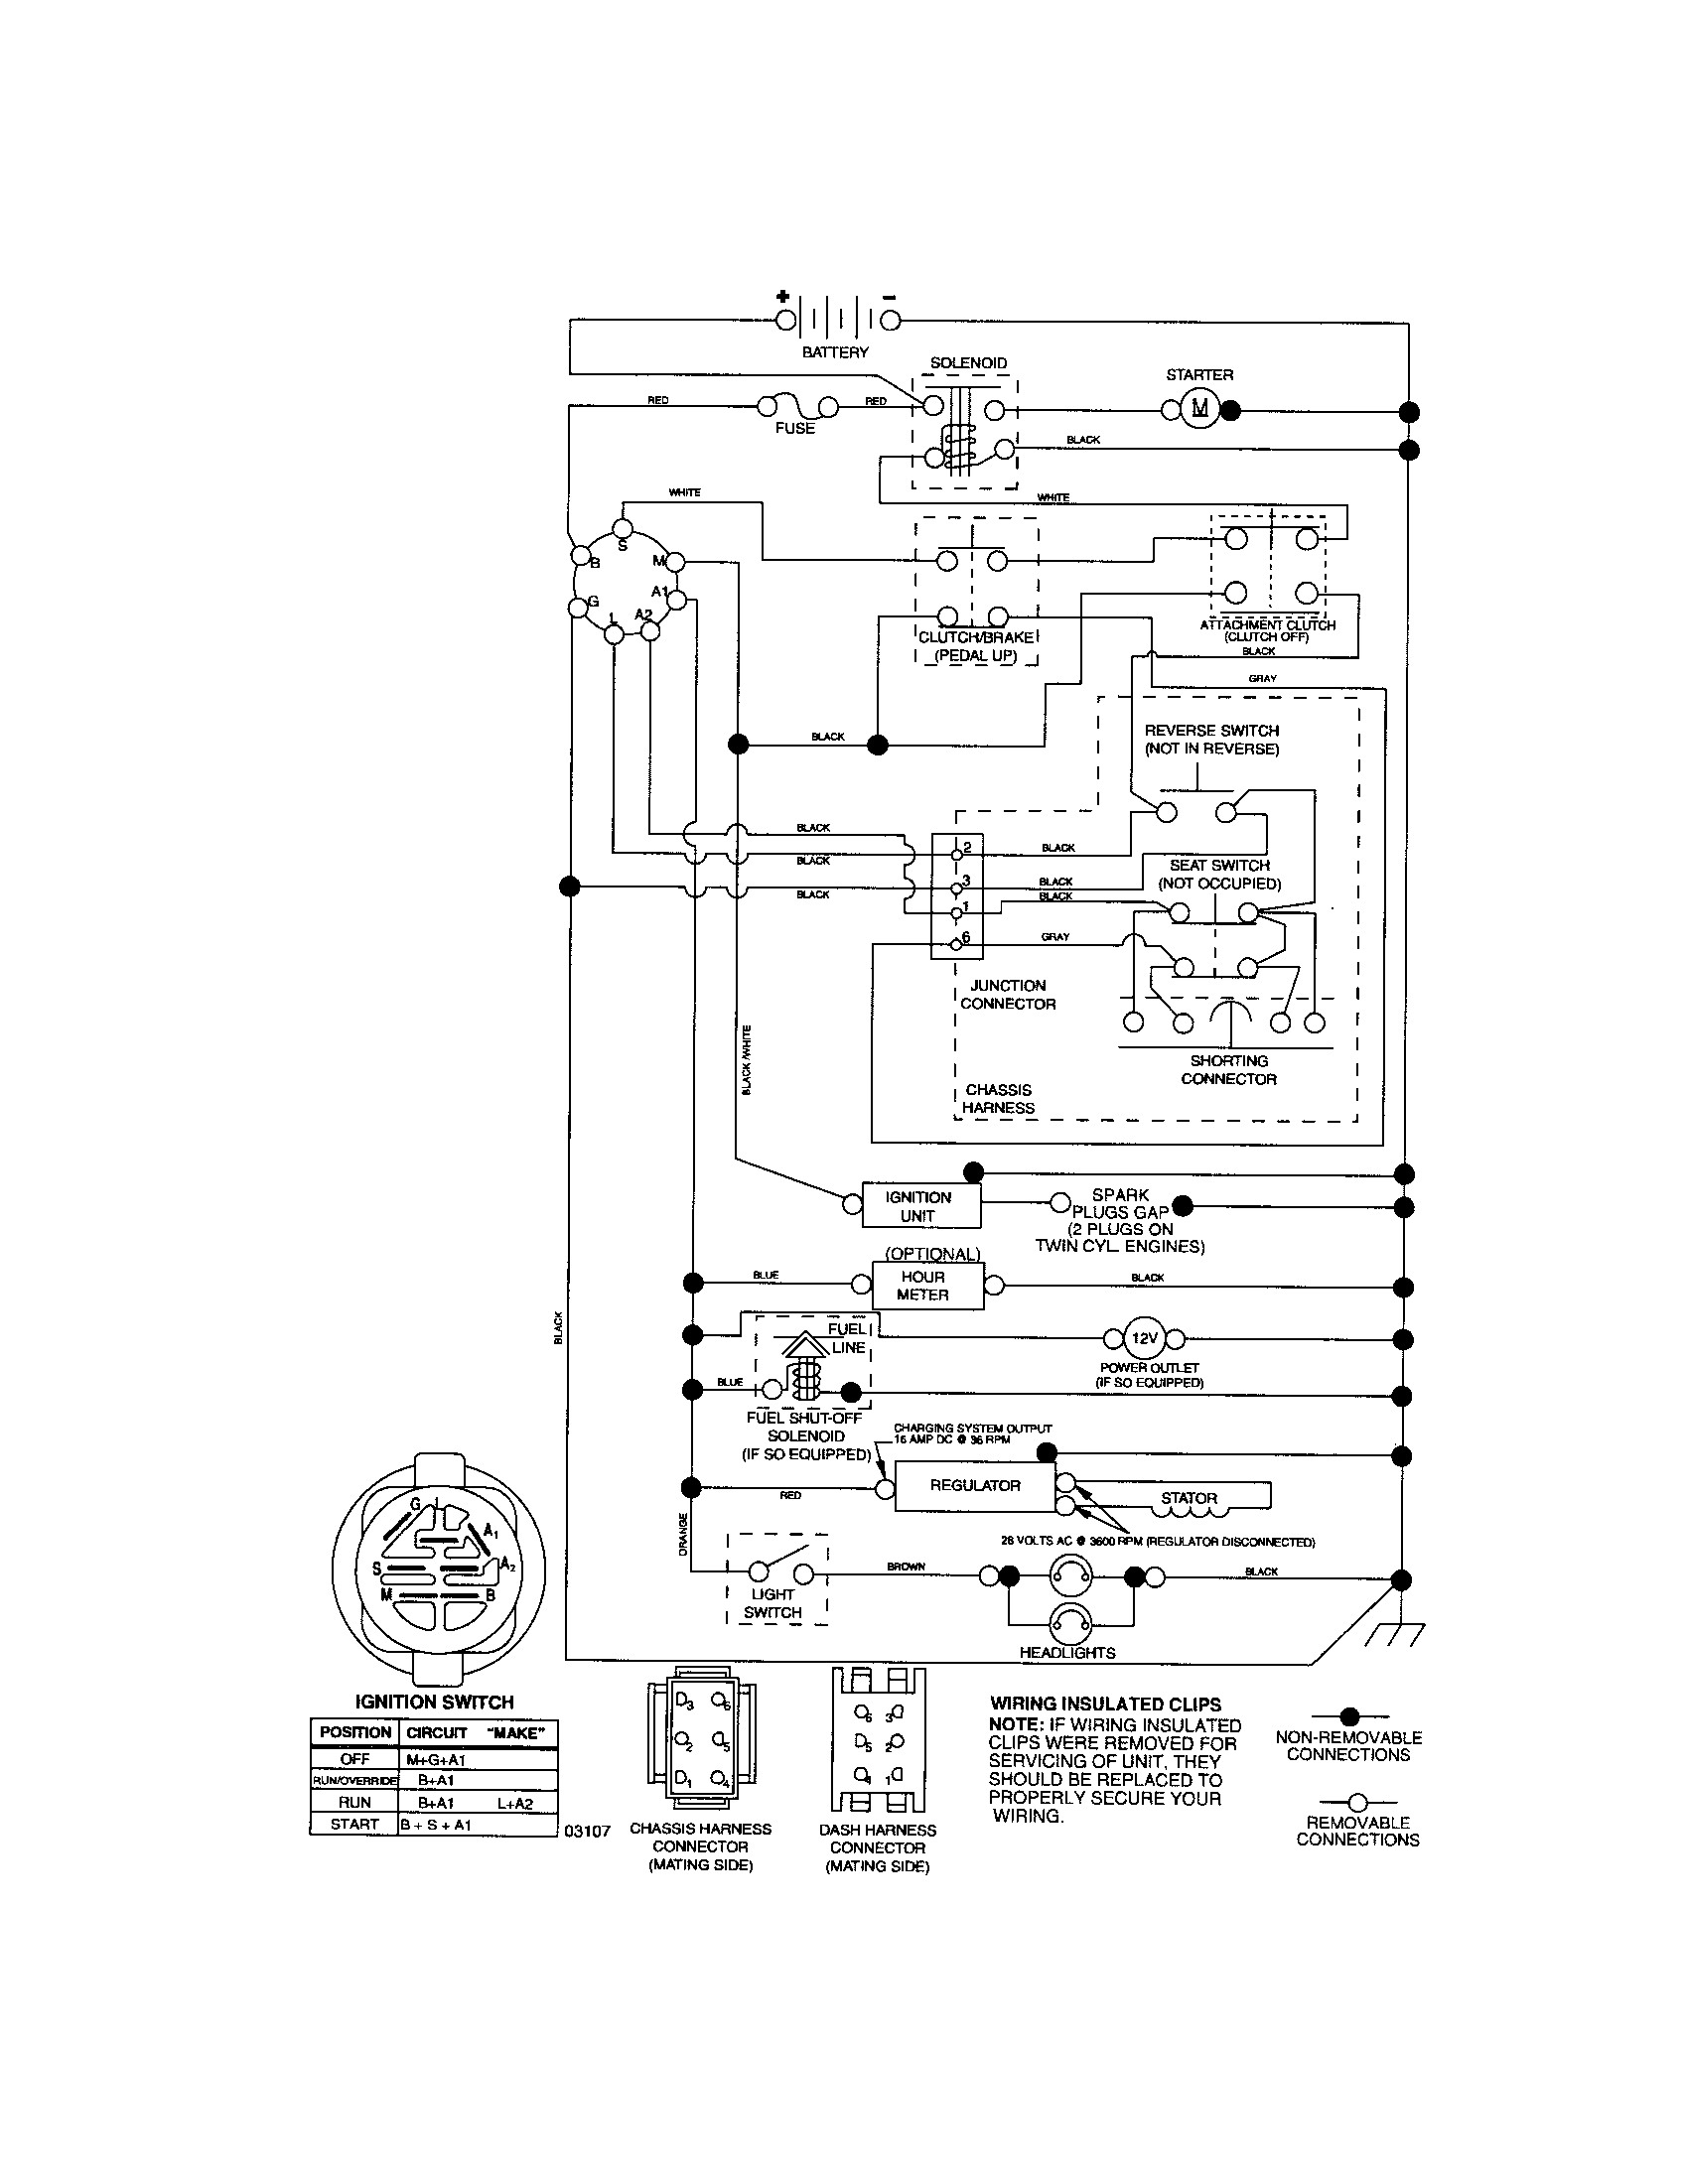 Wiring Diagram Images Detail: Name: riding lawn mower ignition switch  wiring diagram – Lawn Mower Ignition Switch ...